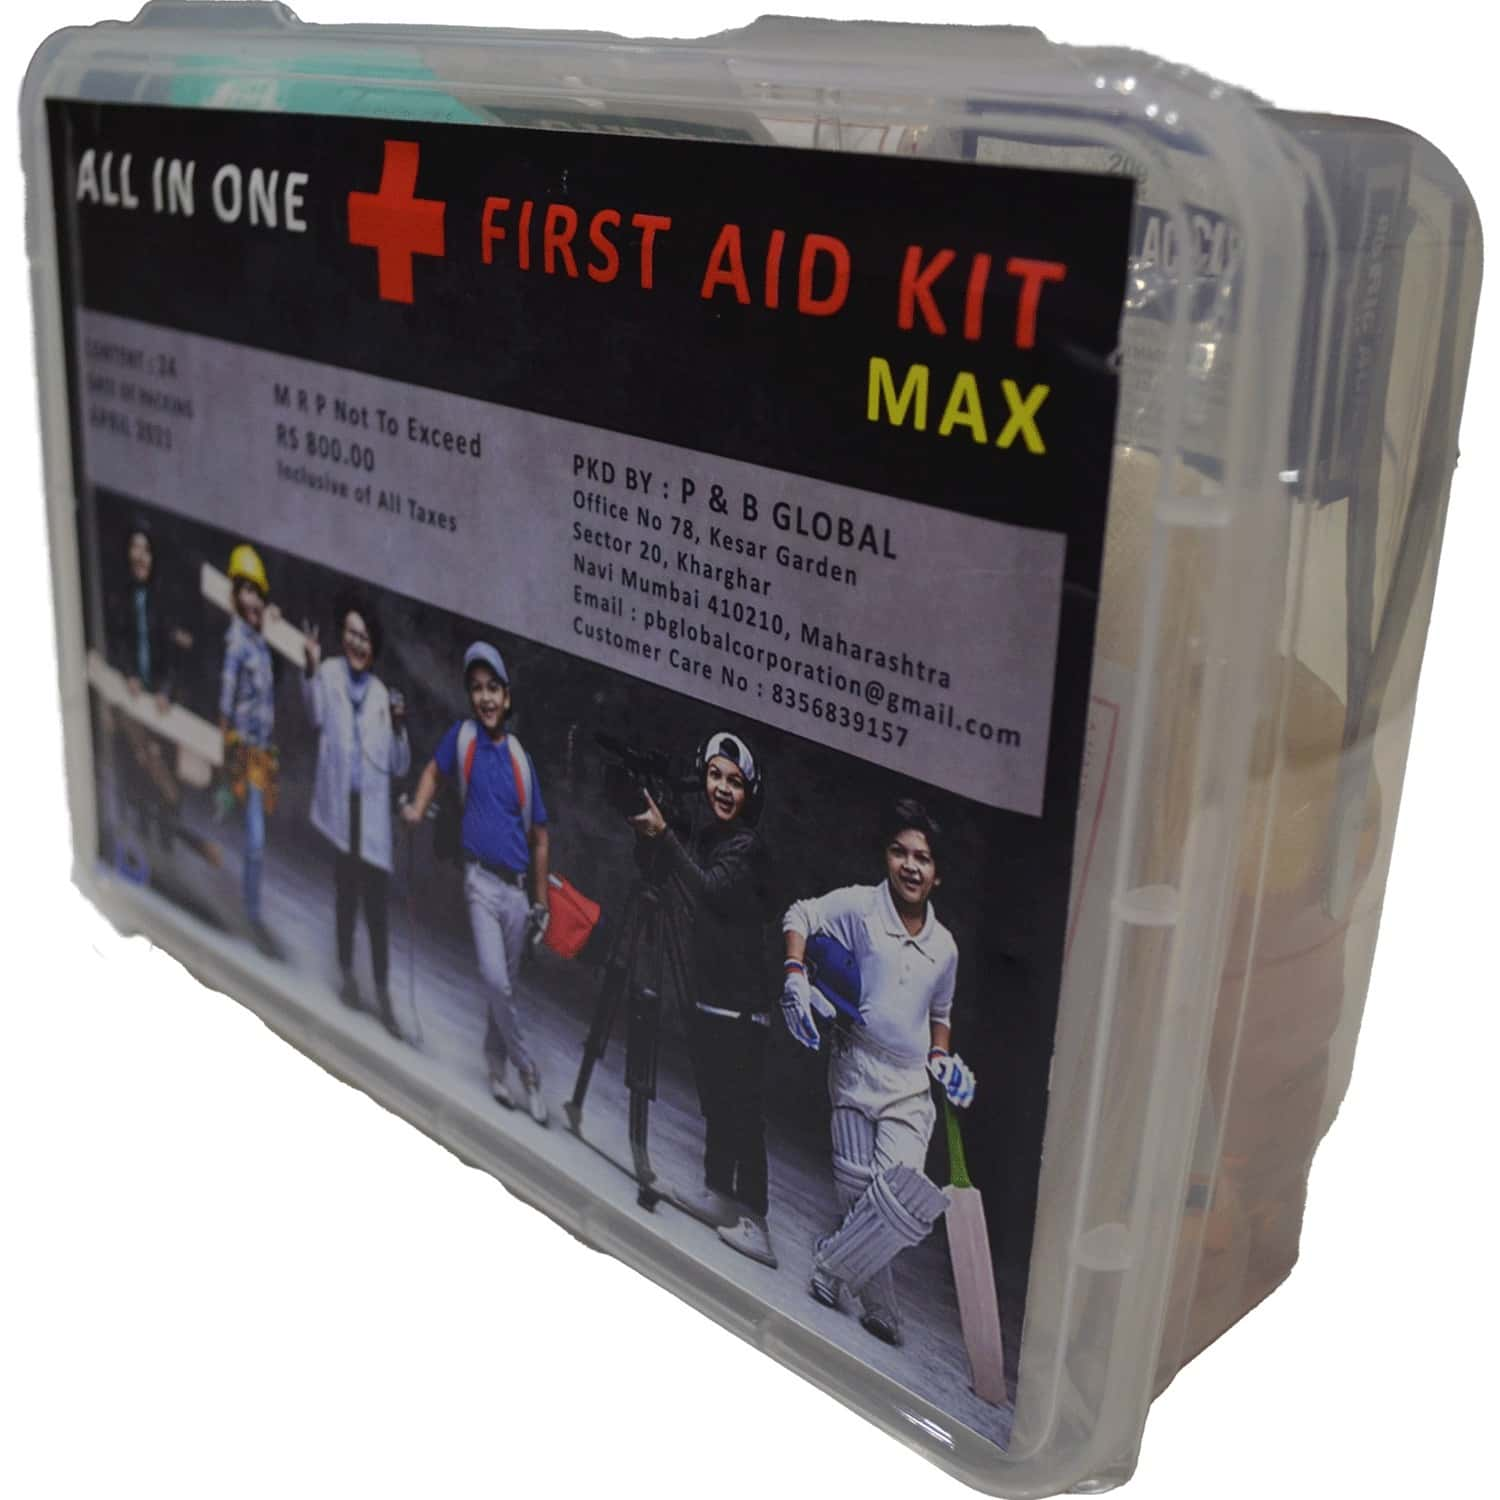 All In One First Aid Kit Max